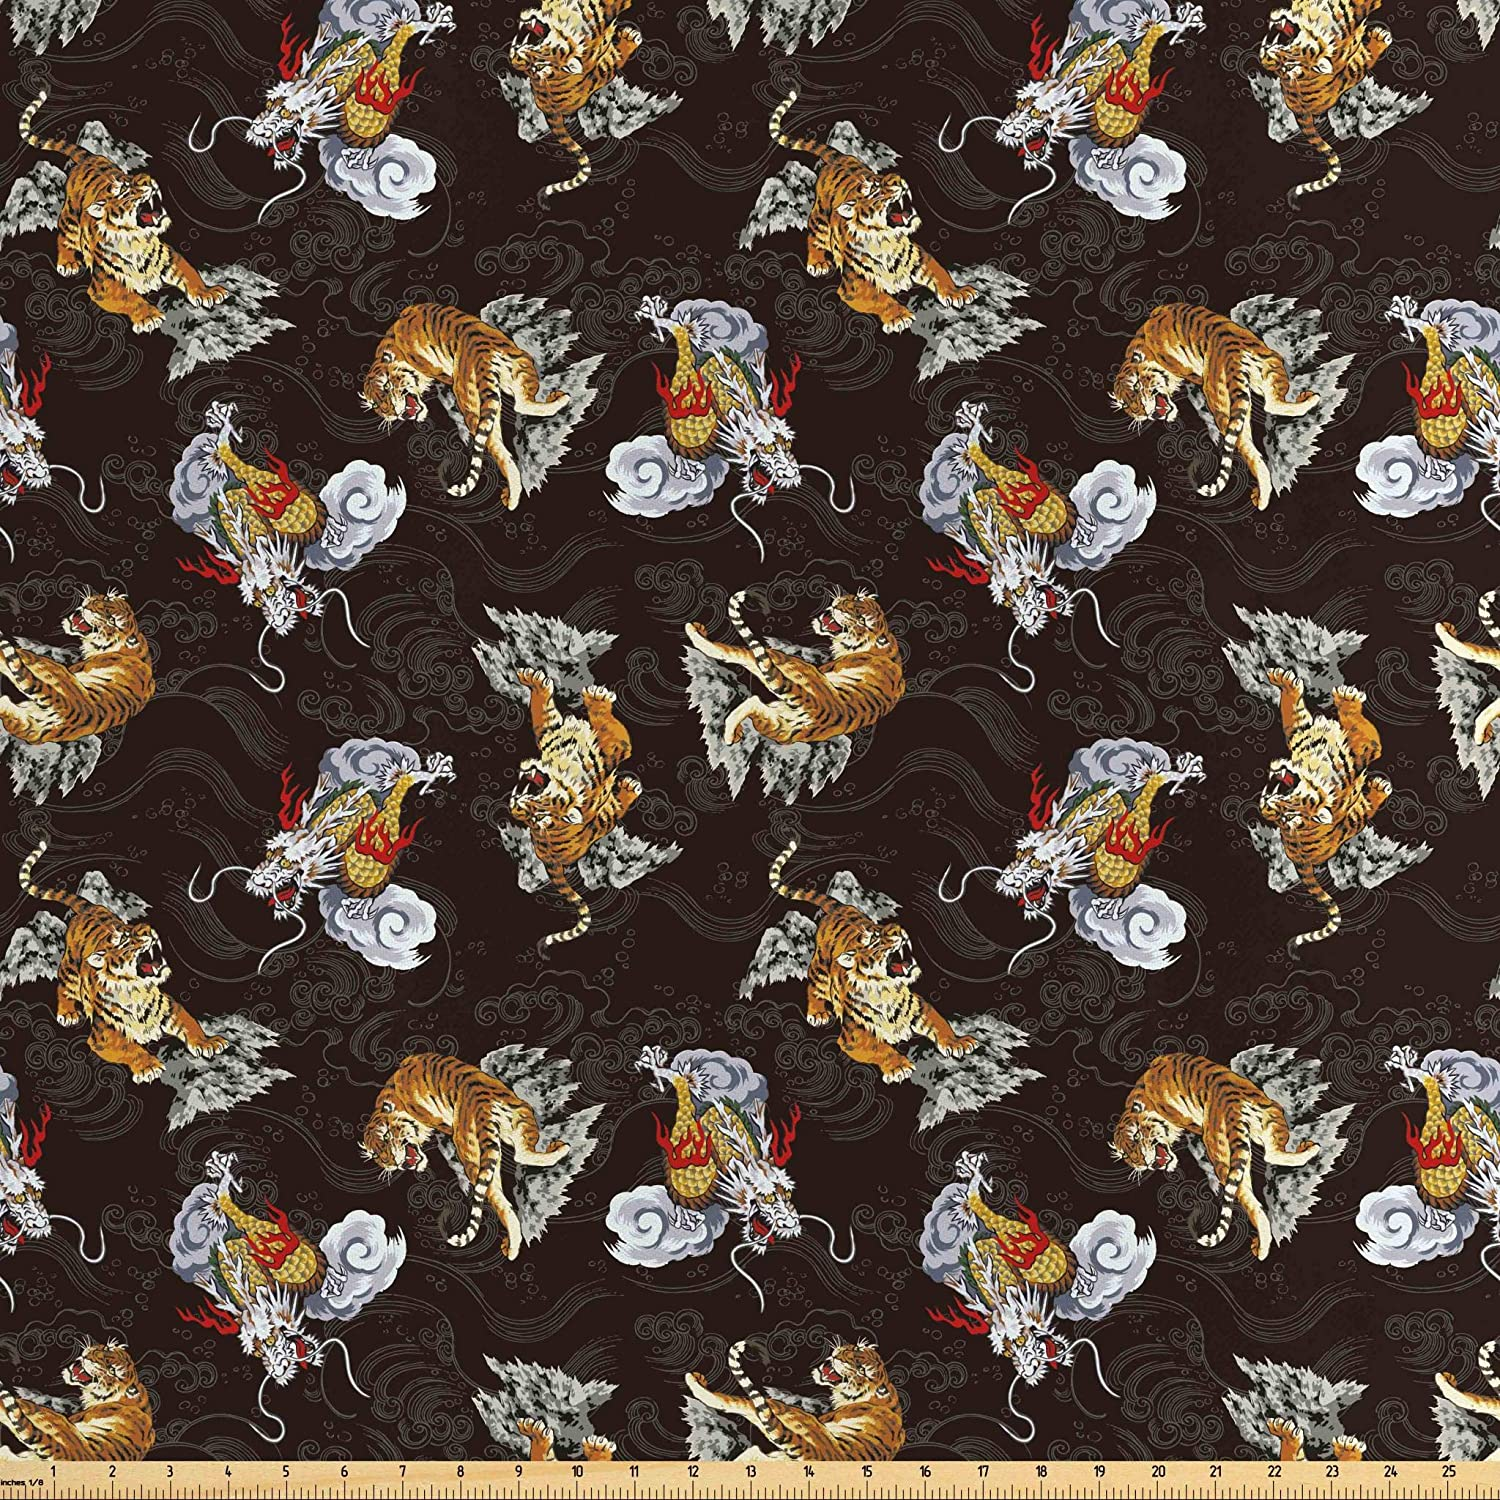 Fabric Craft Bundle Boys Room Ideas Fabric Camelot Dragon Fat Quarter Bundle